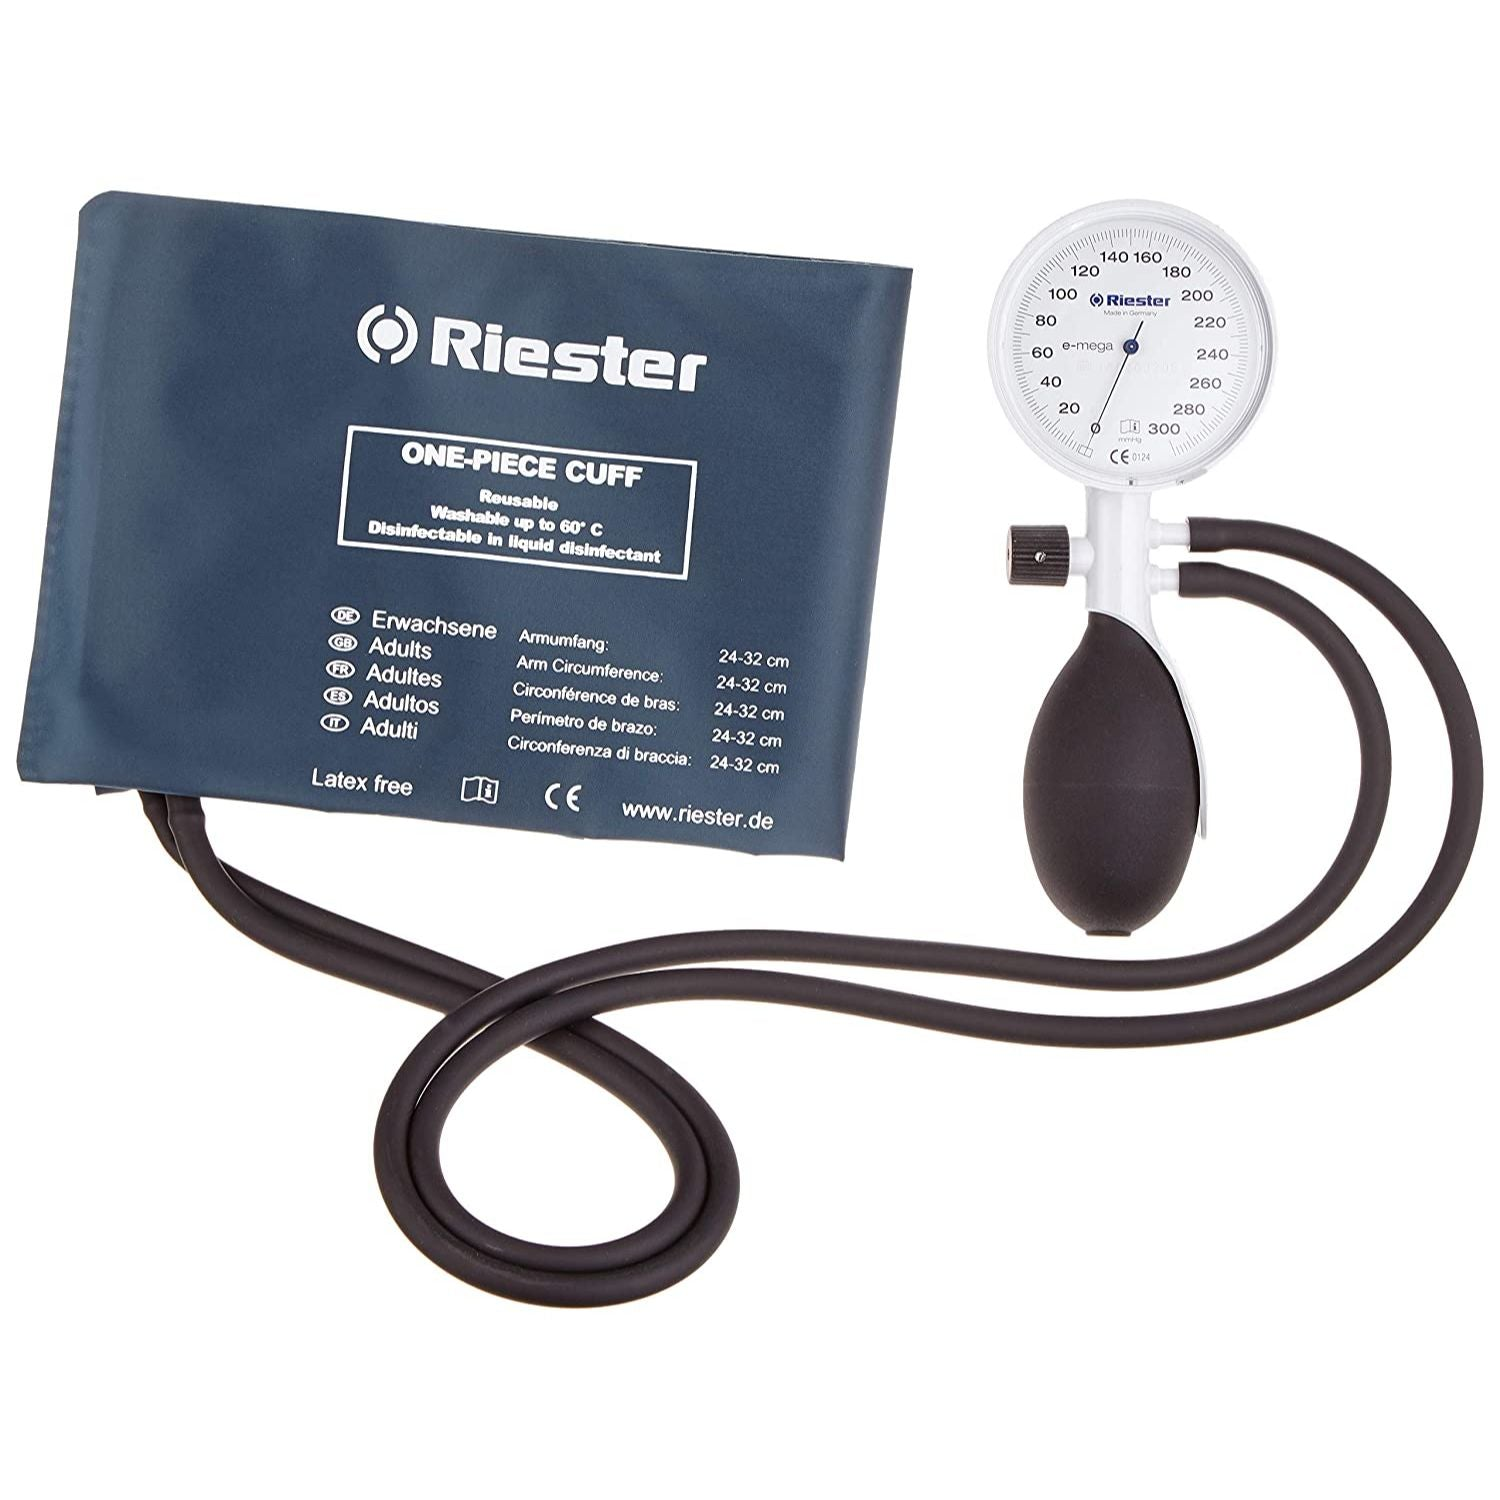 Riester E-Mega 2-Tube Sphygmomanometer Set With Disinfectable One-Piece Cuff